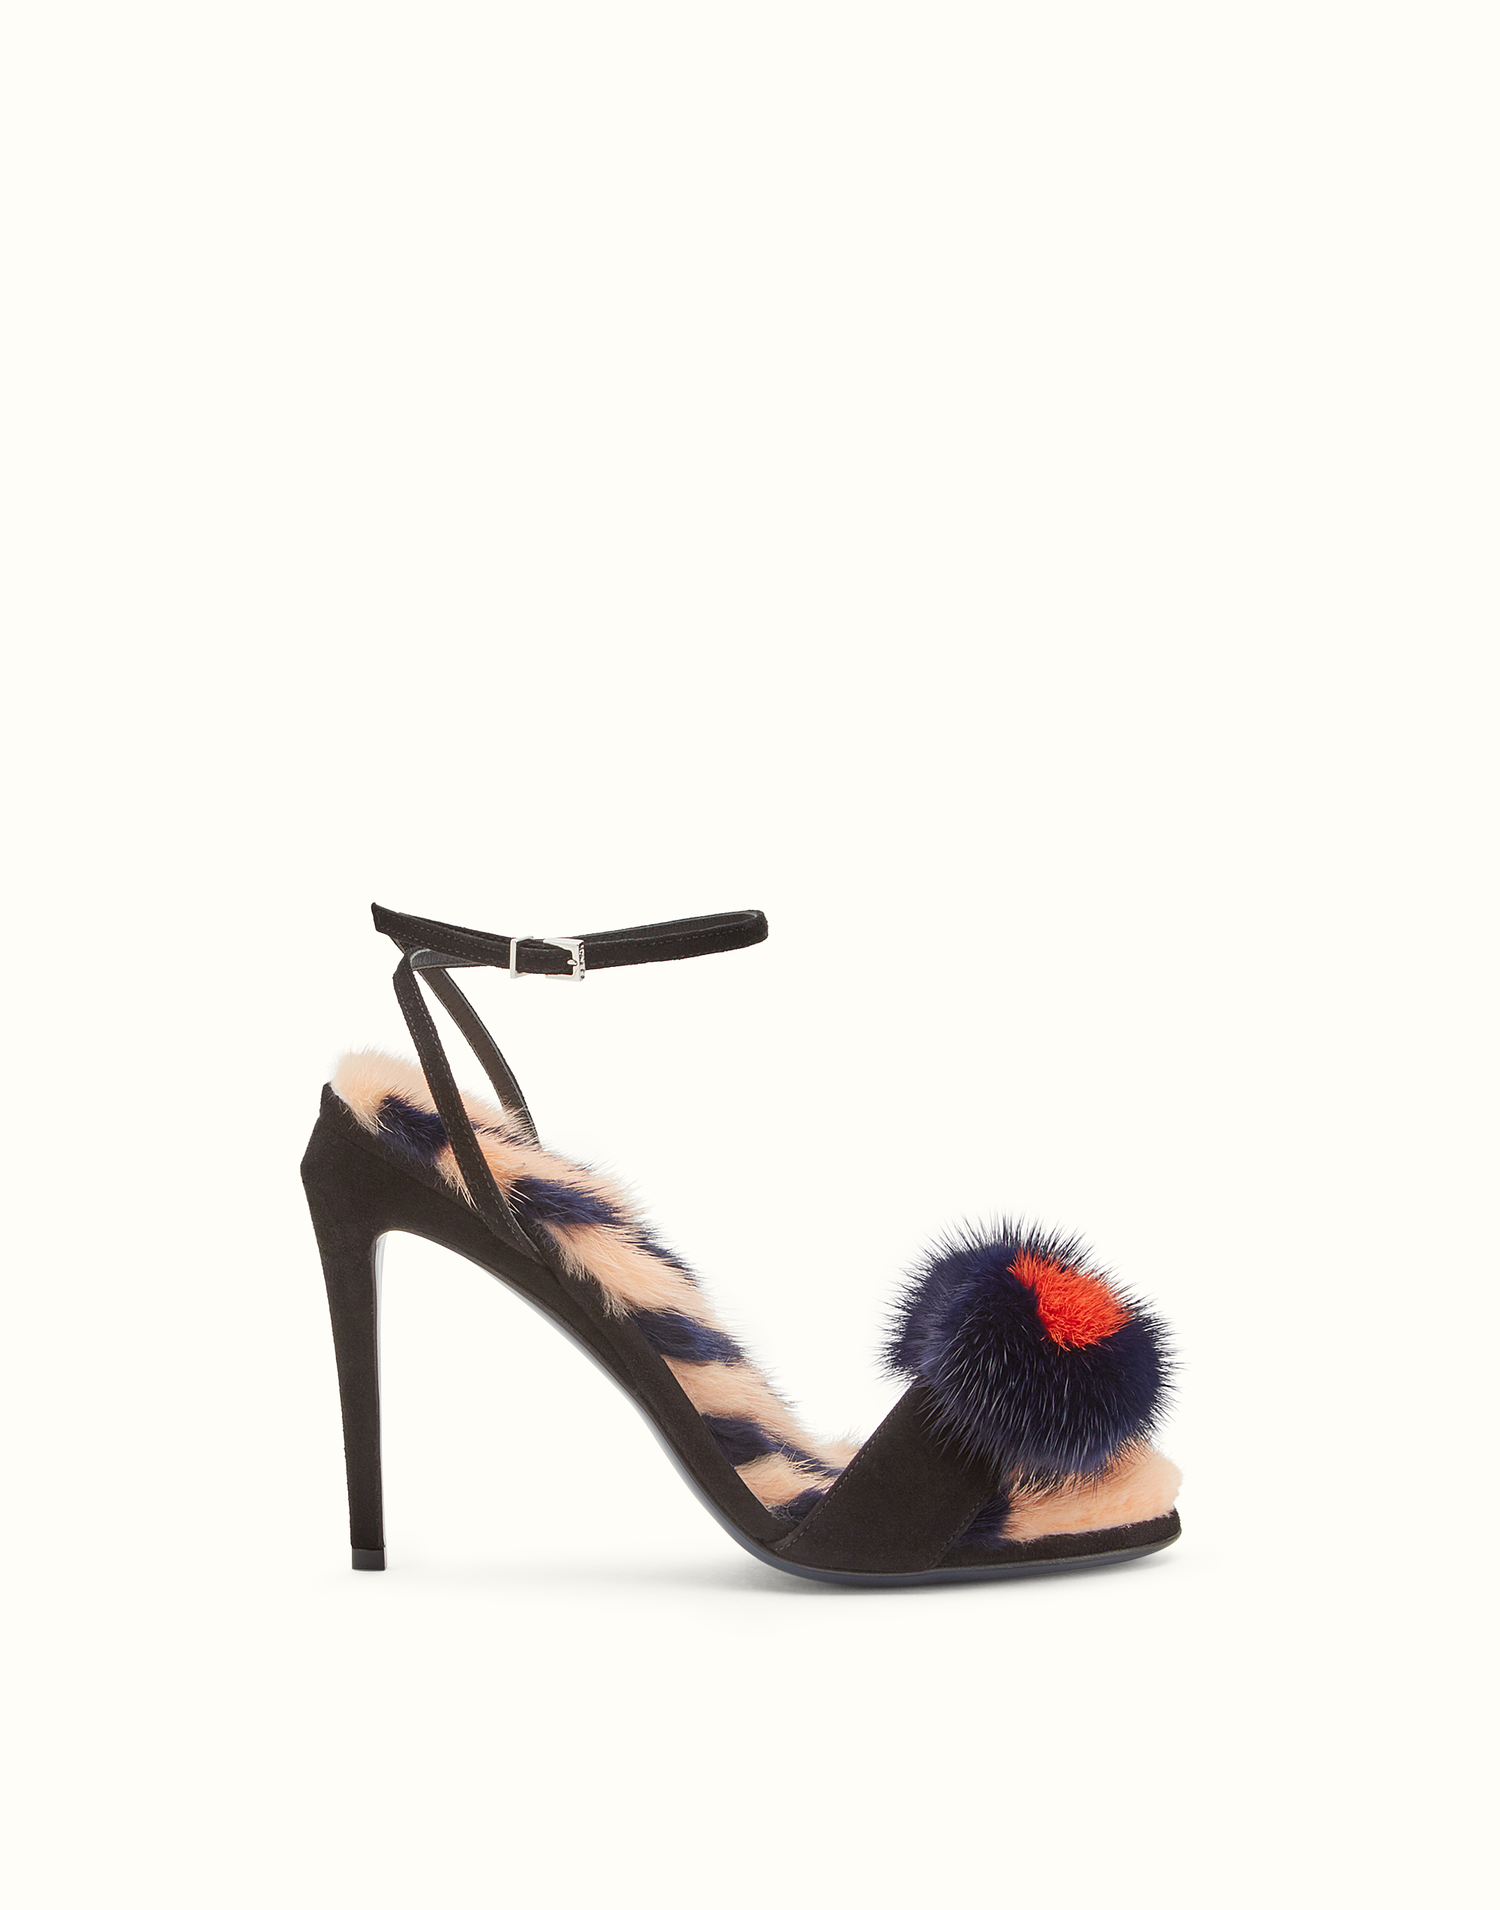 fendi sandals black suede fur